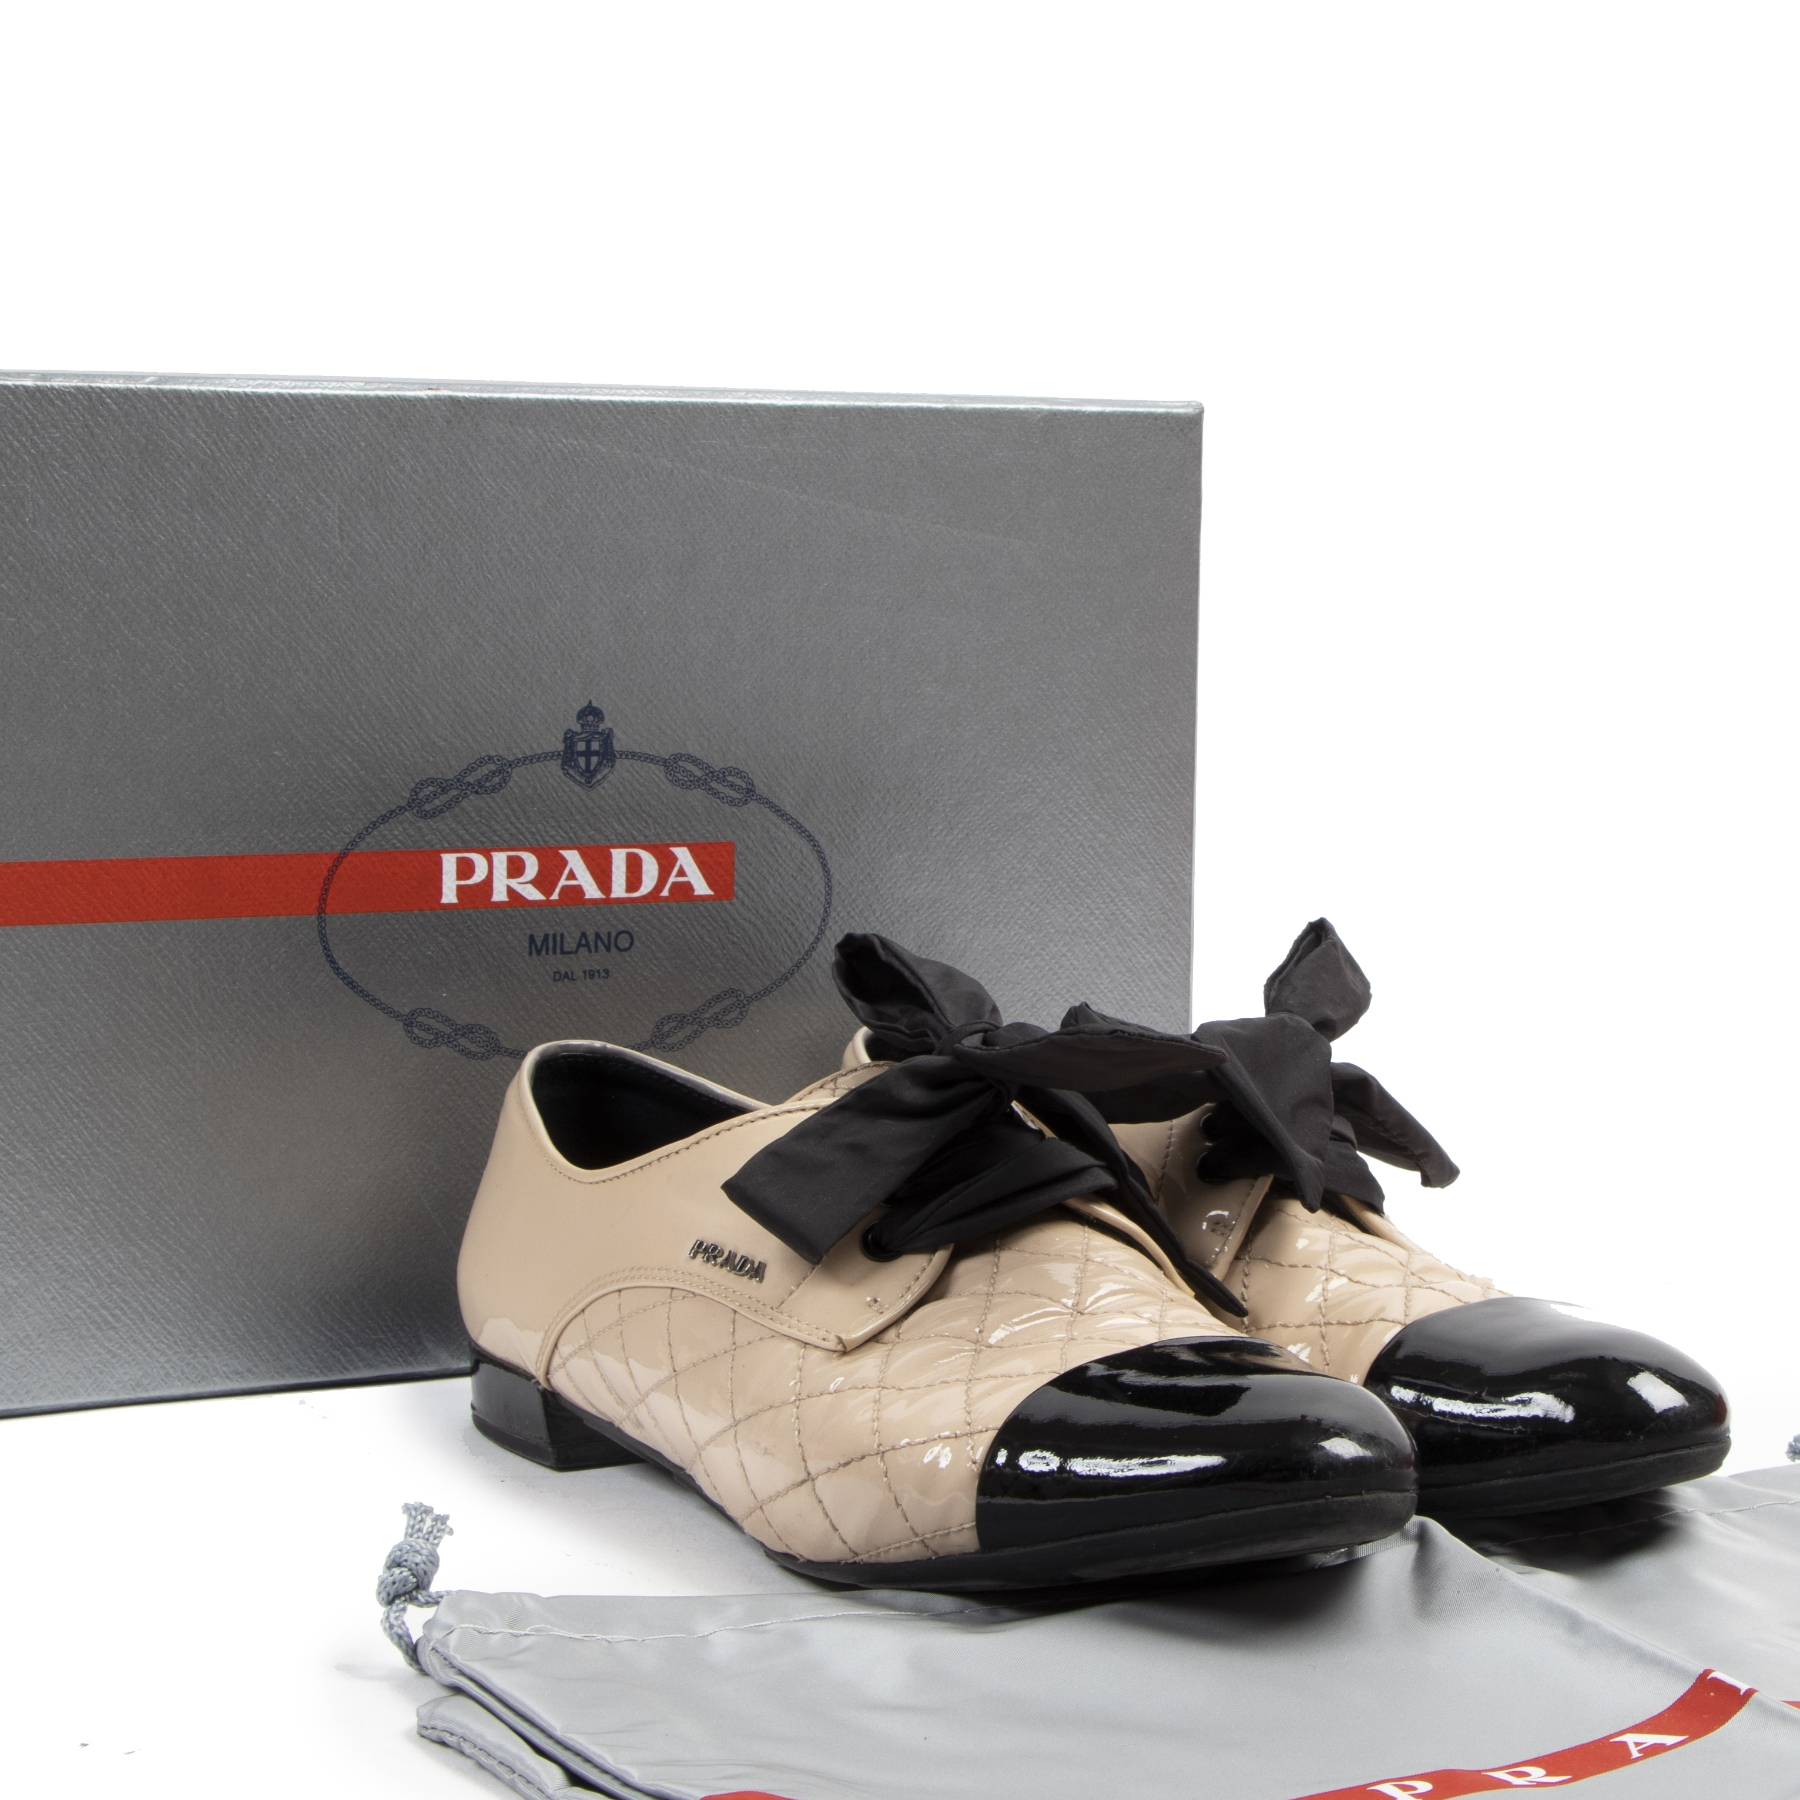 Authentique seconde-main vintage Prada Quilted Patent Cap Toe Shoes - Size 38,5 achète en ligne webshop LabelLOV